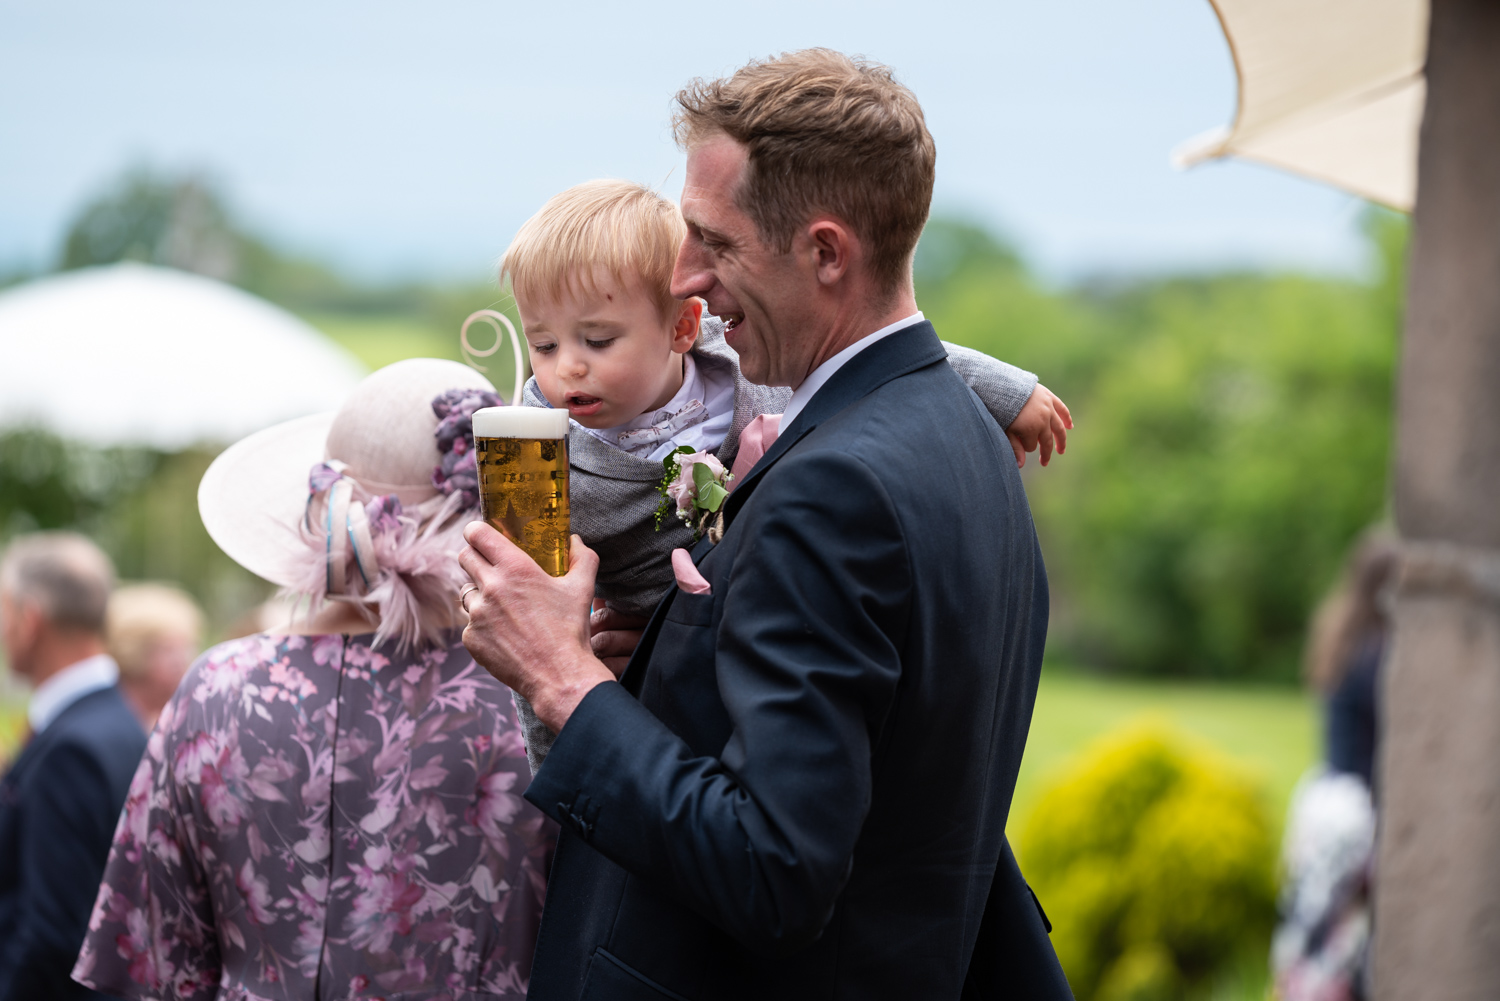 Baby trying to drink beer at wedding